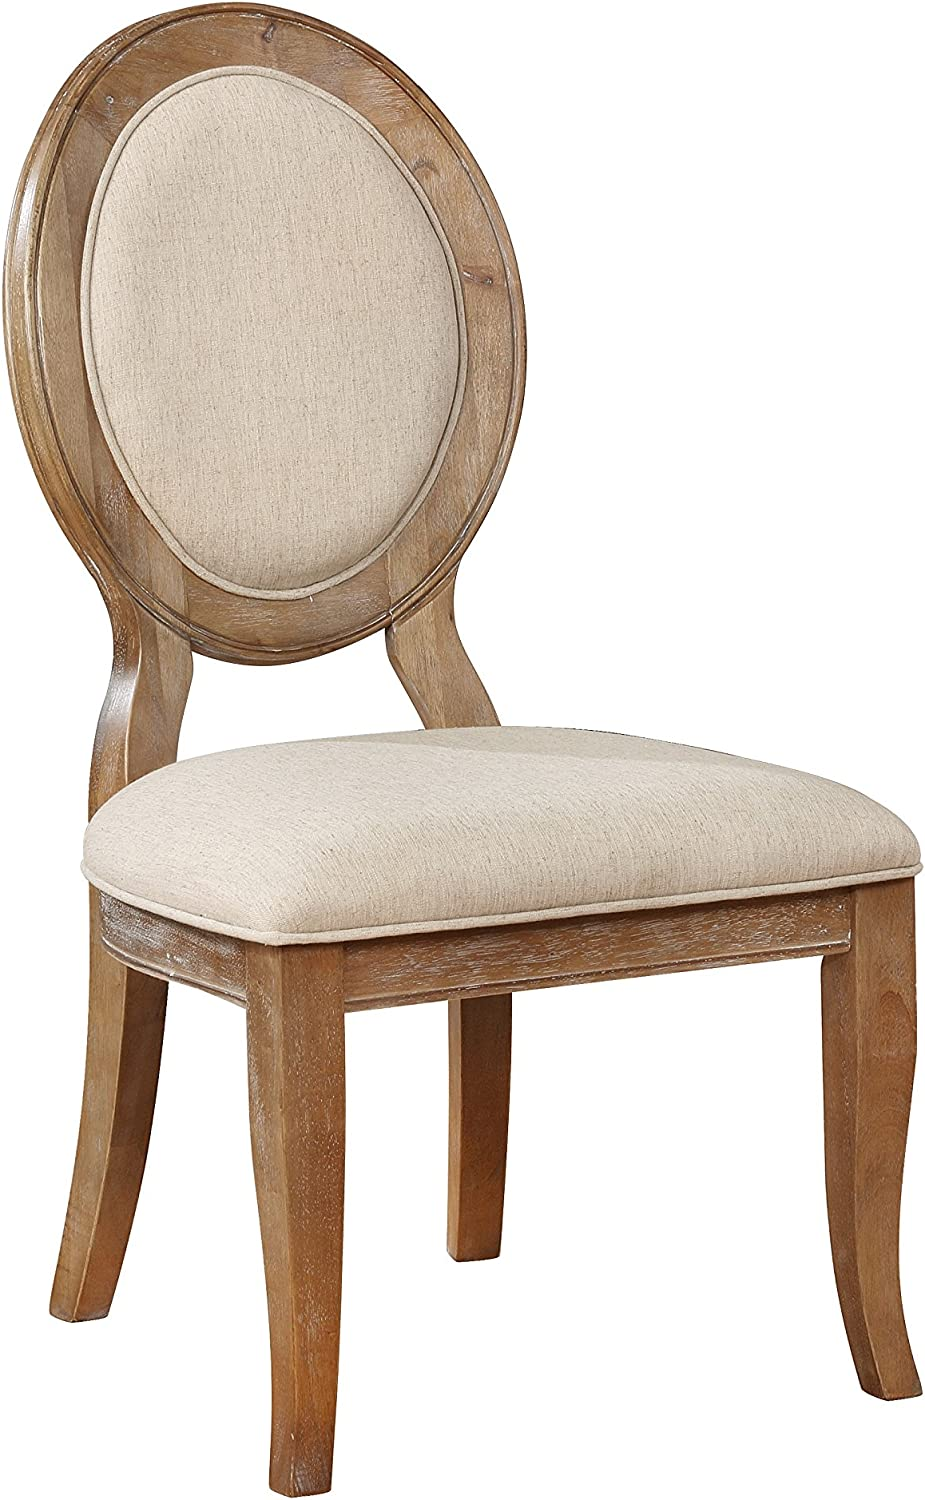 Powell Furniture Lenoir Side Dining Chair, Wire-brushed oak